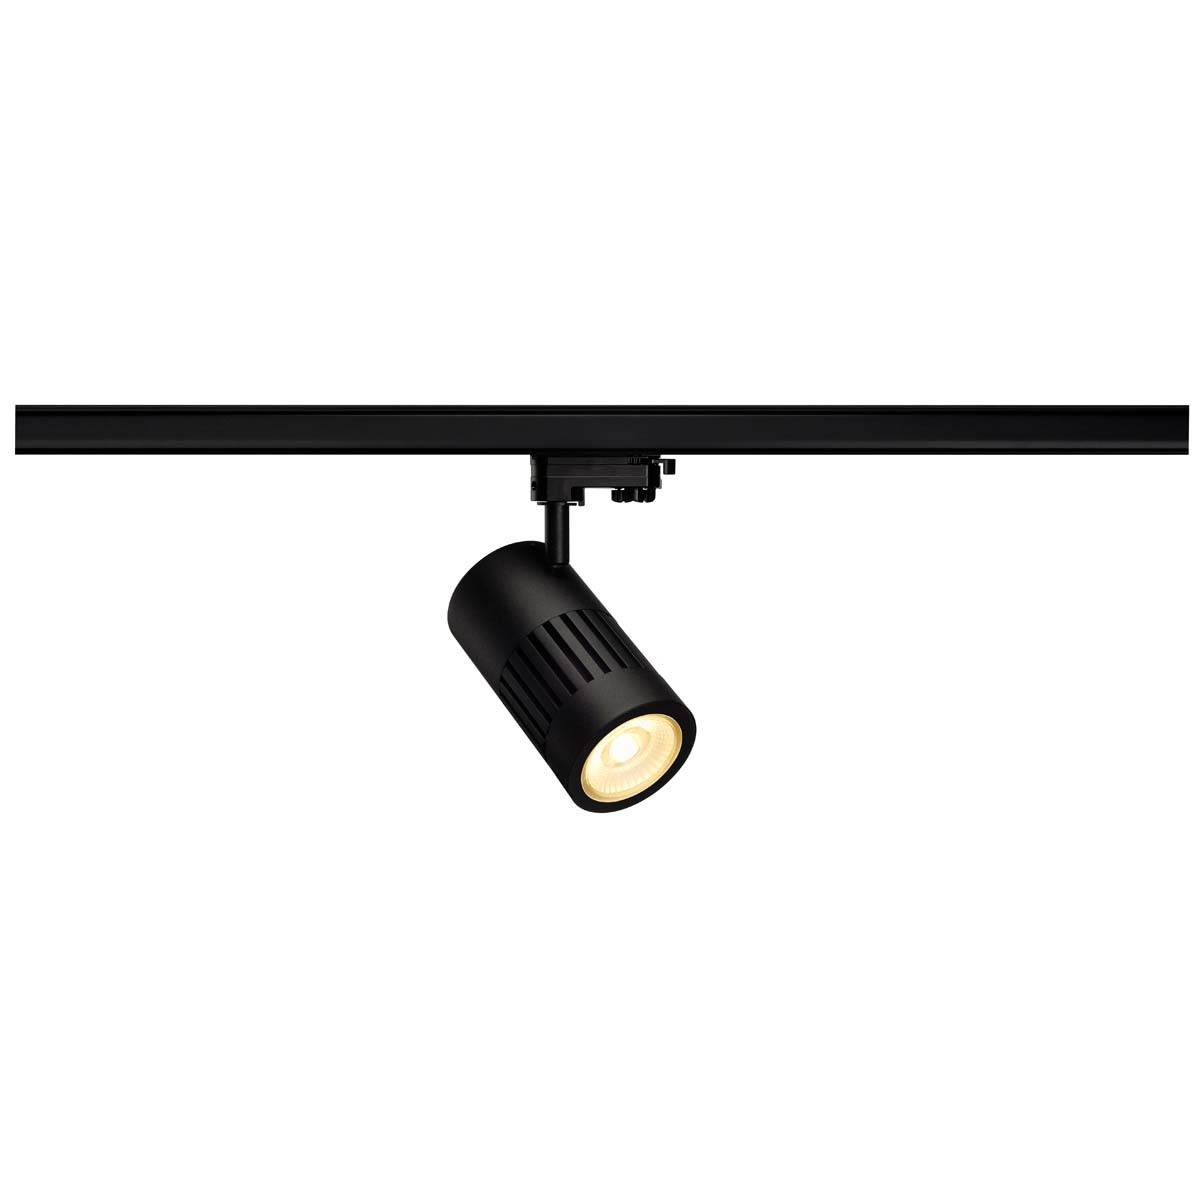 SLV 176090 STRUCTEC LED 30W, round, black, rich colour, 60°, incl. 3-phase Adapter